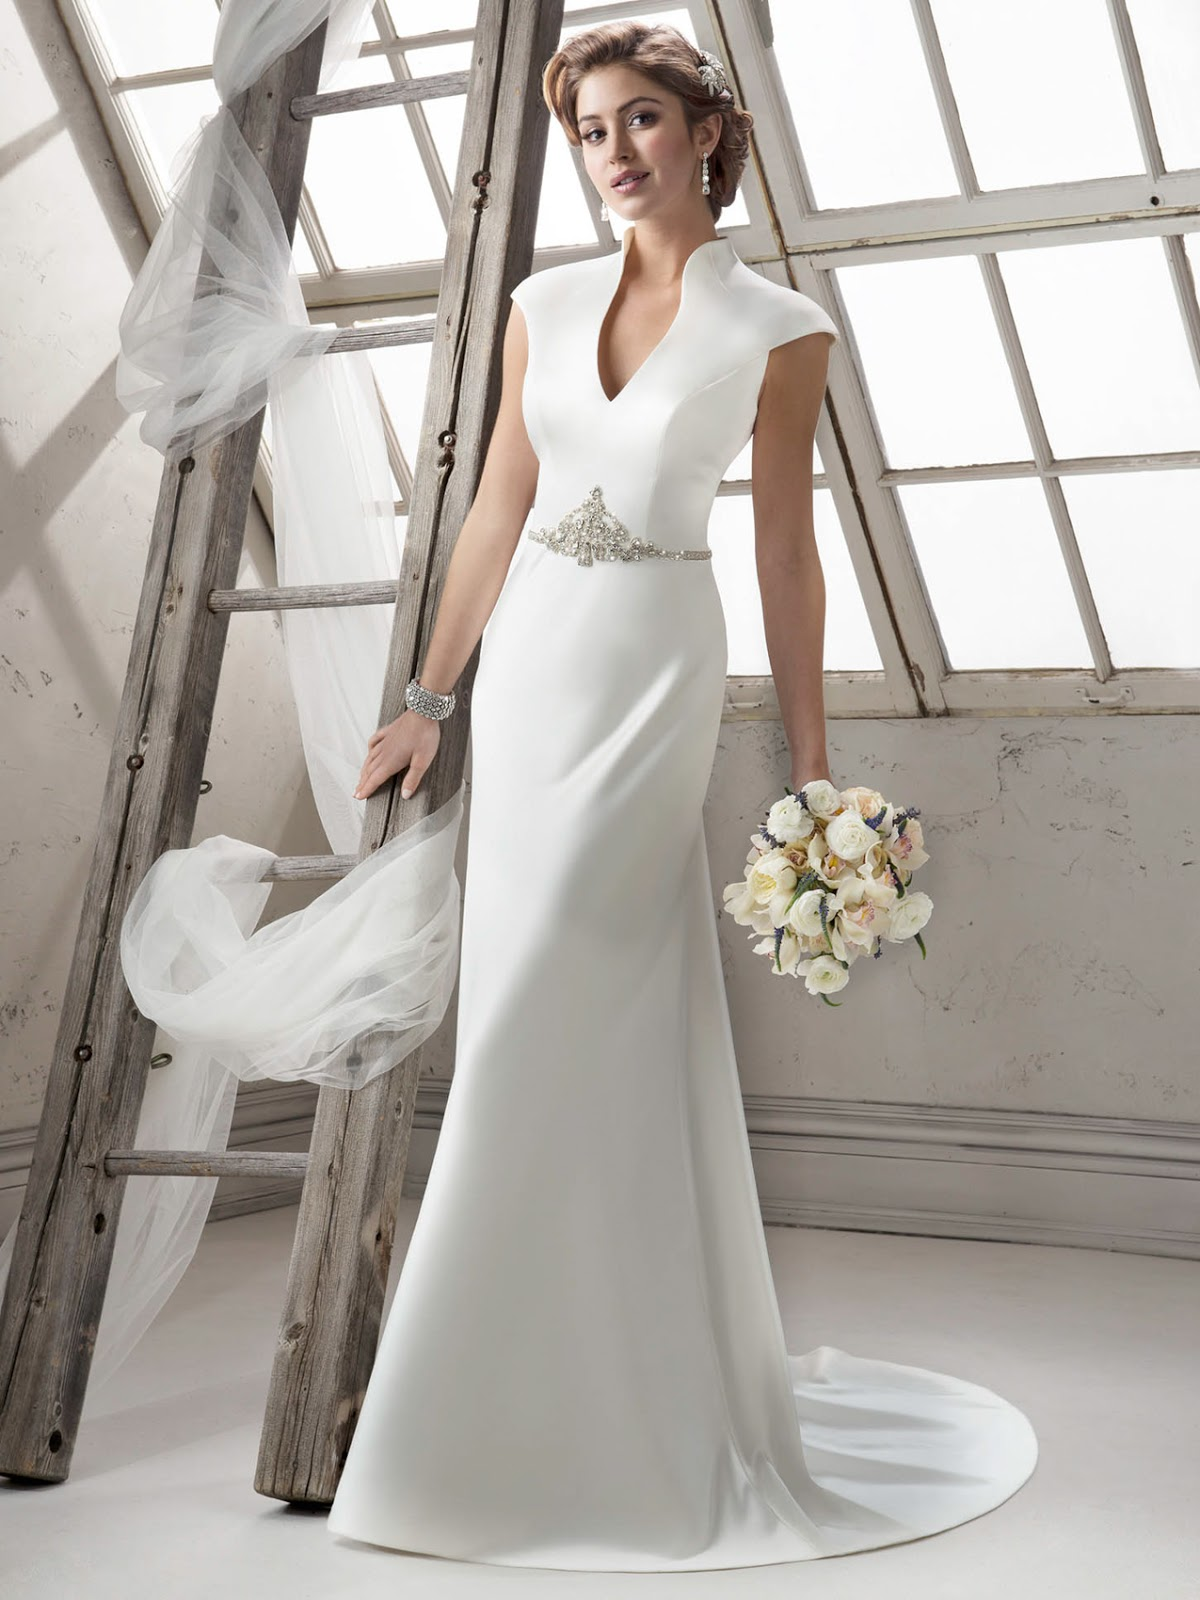 Wedding Dresses for Outdoor Wedding, Rent Wedding Dresses NYC, Cheap Wedding Dresses, Wedding Dresses NYC Cheap, Wedding Dresses NYC Sample Sale, Lovely Wedding Dresses NYC, Wedding Dress Shops in NYC, Vintage Style Wedding Dresses